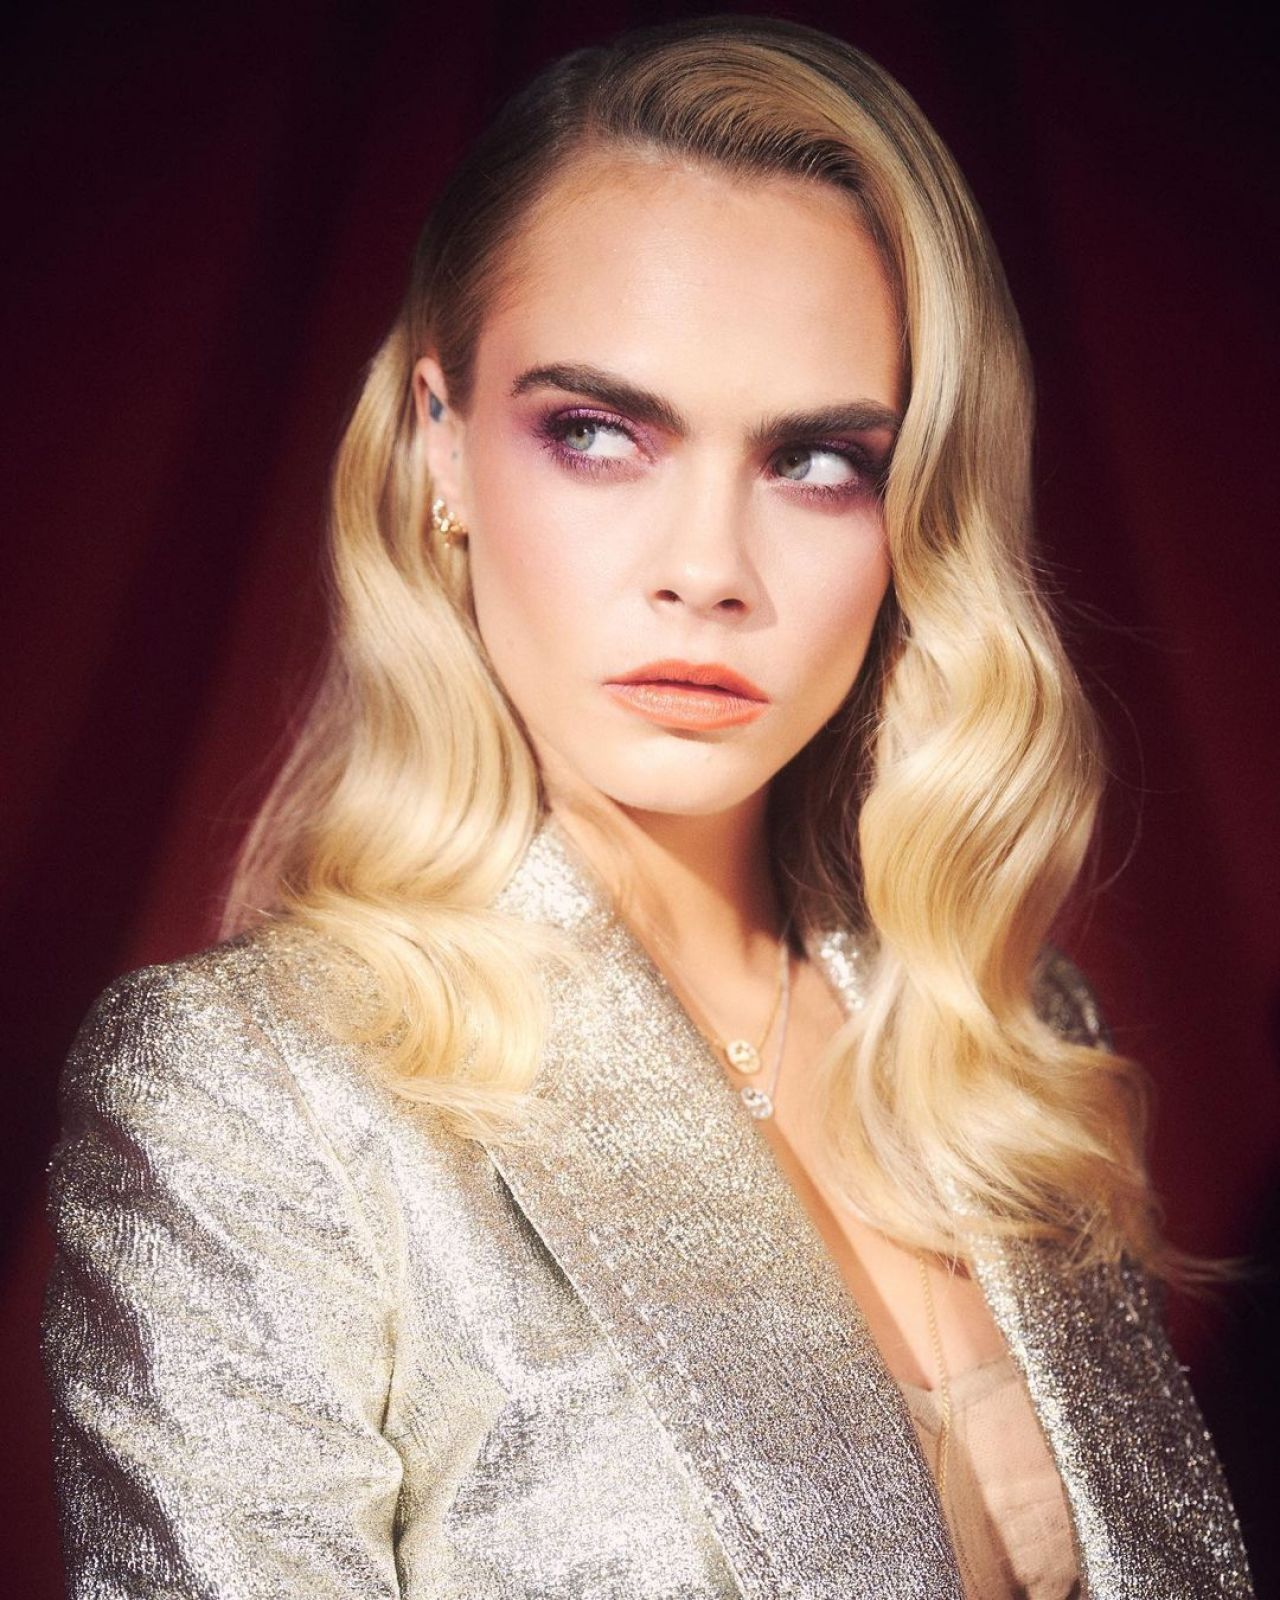 Cara Delevingne photo #974444